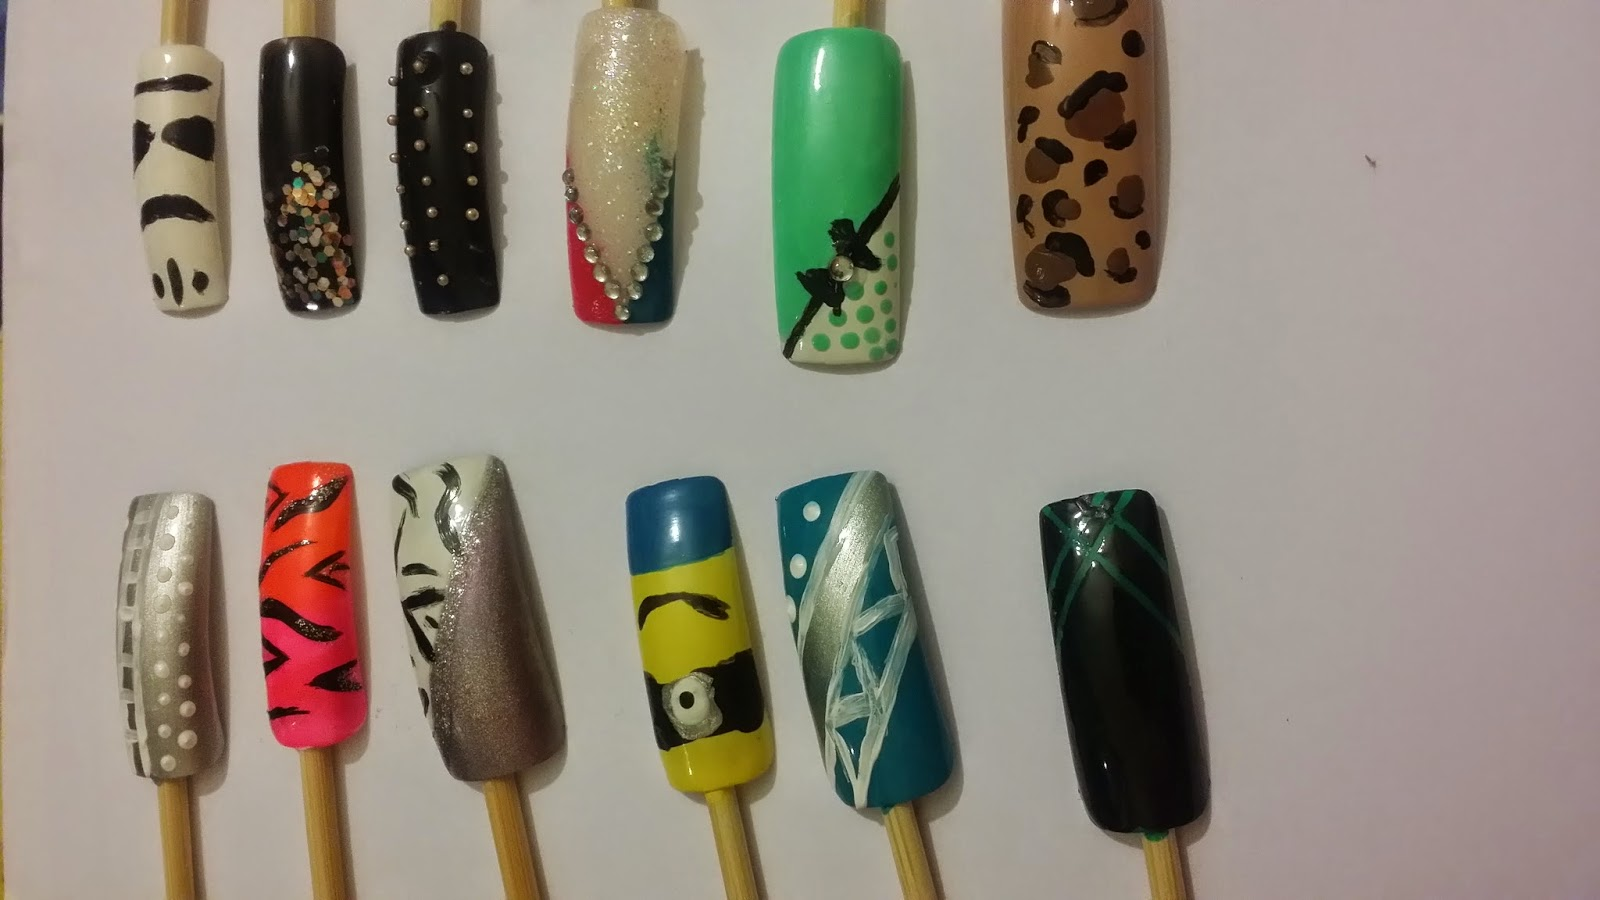 Nails by Tinks